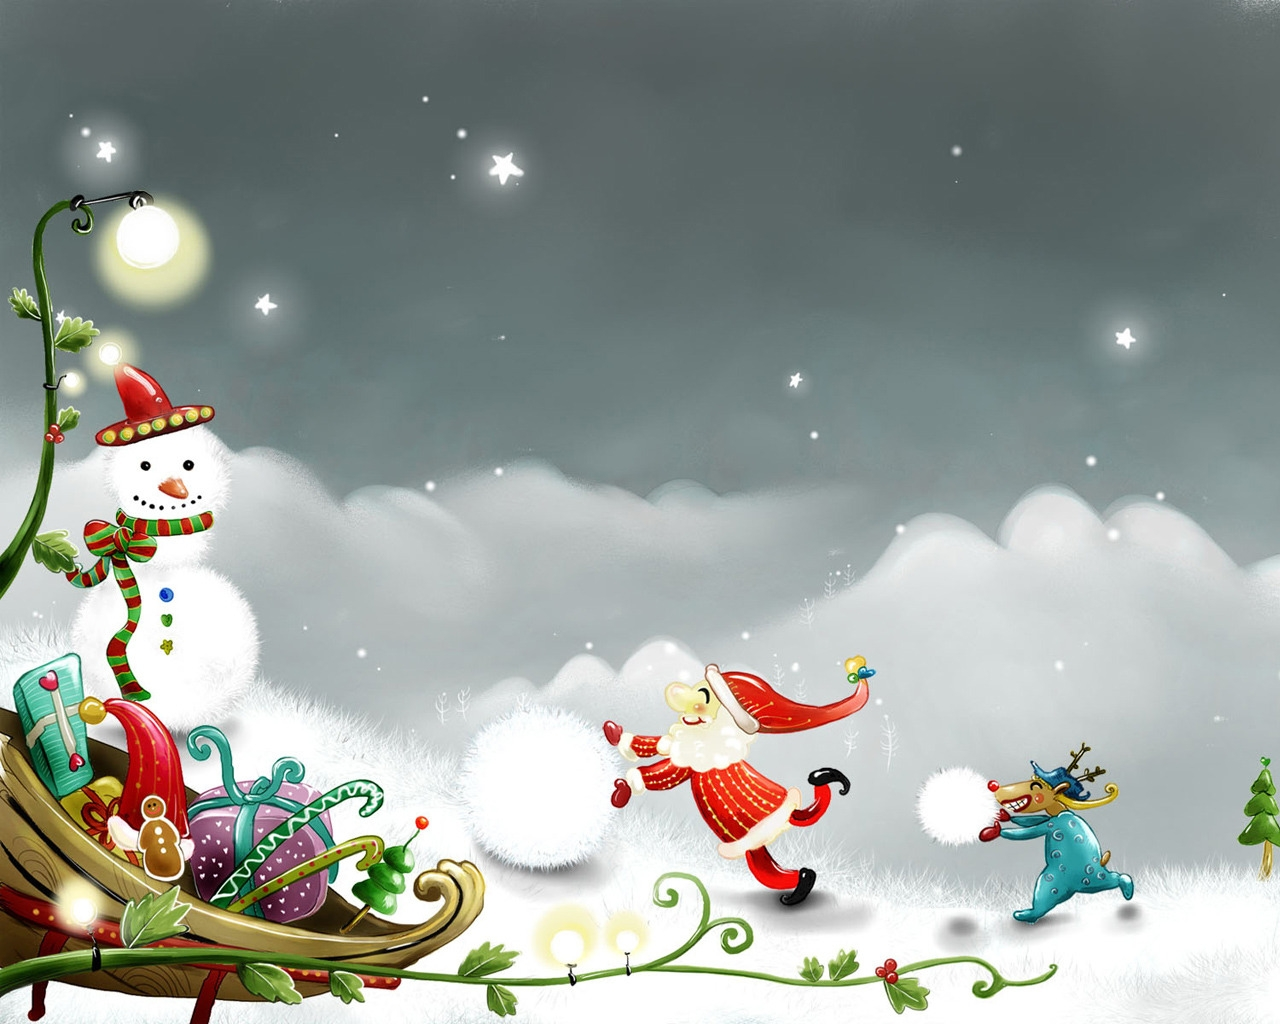 Snowman and Santa Claus for 1280 x 1024 resolution